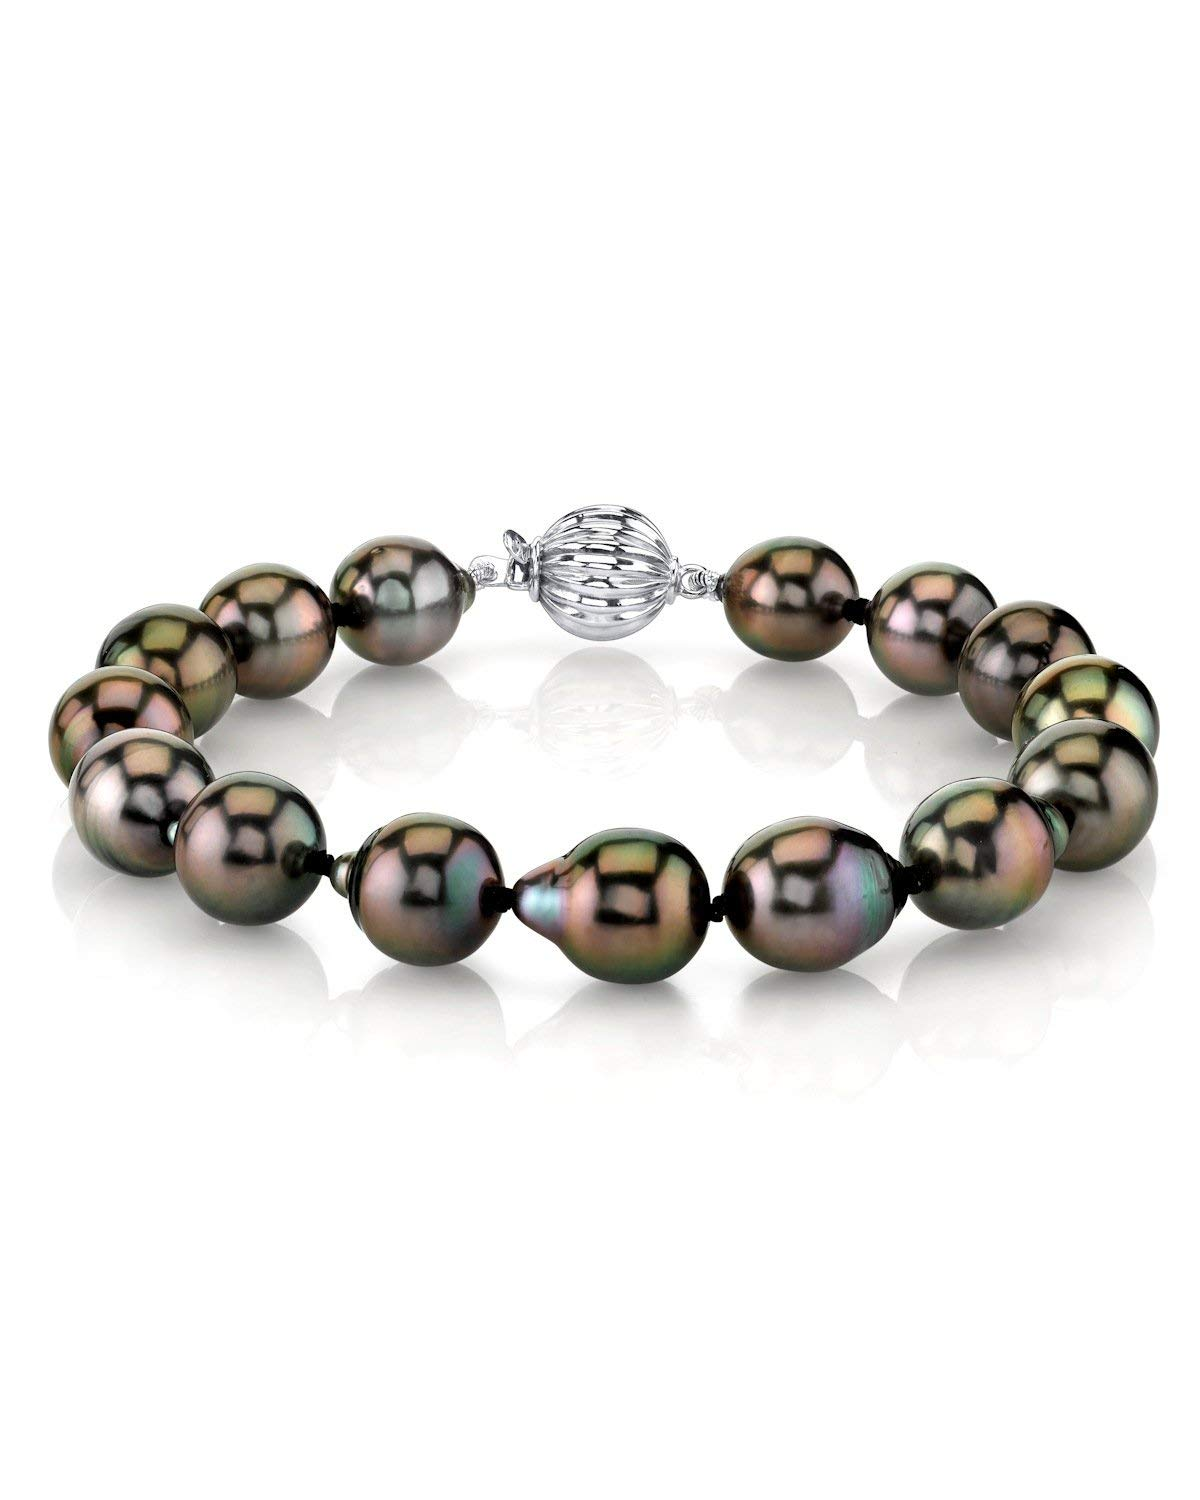 THE PEARL SOURCE 14K Gold 10-11mm Drop-Shape Genuine Black Tahitian South Sea Cultured Pearl Bracelet for Women by The Pearl Source